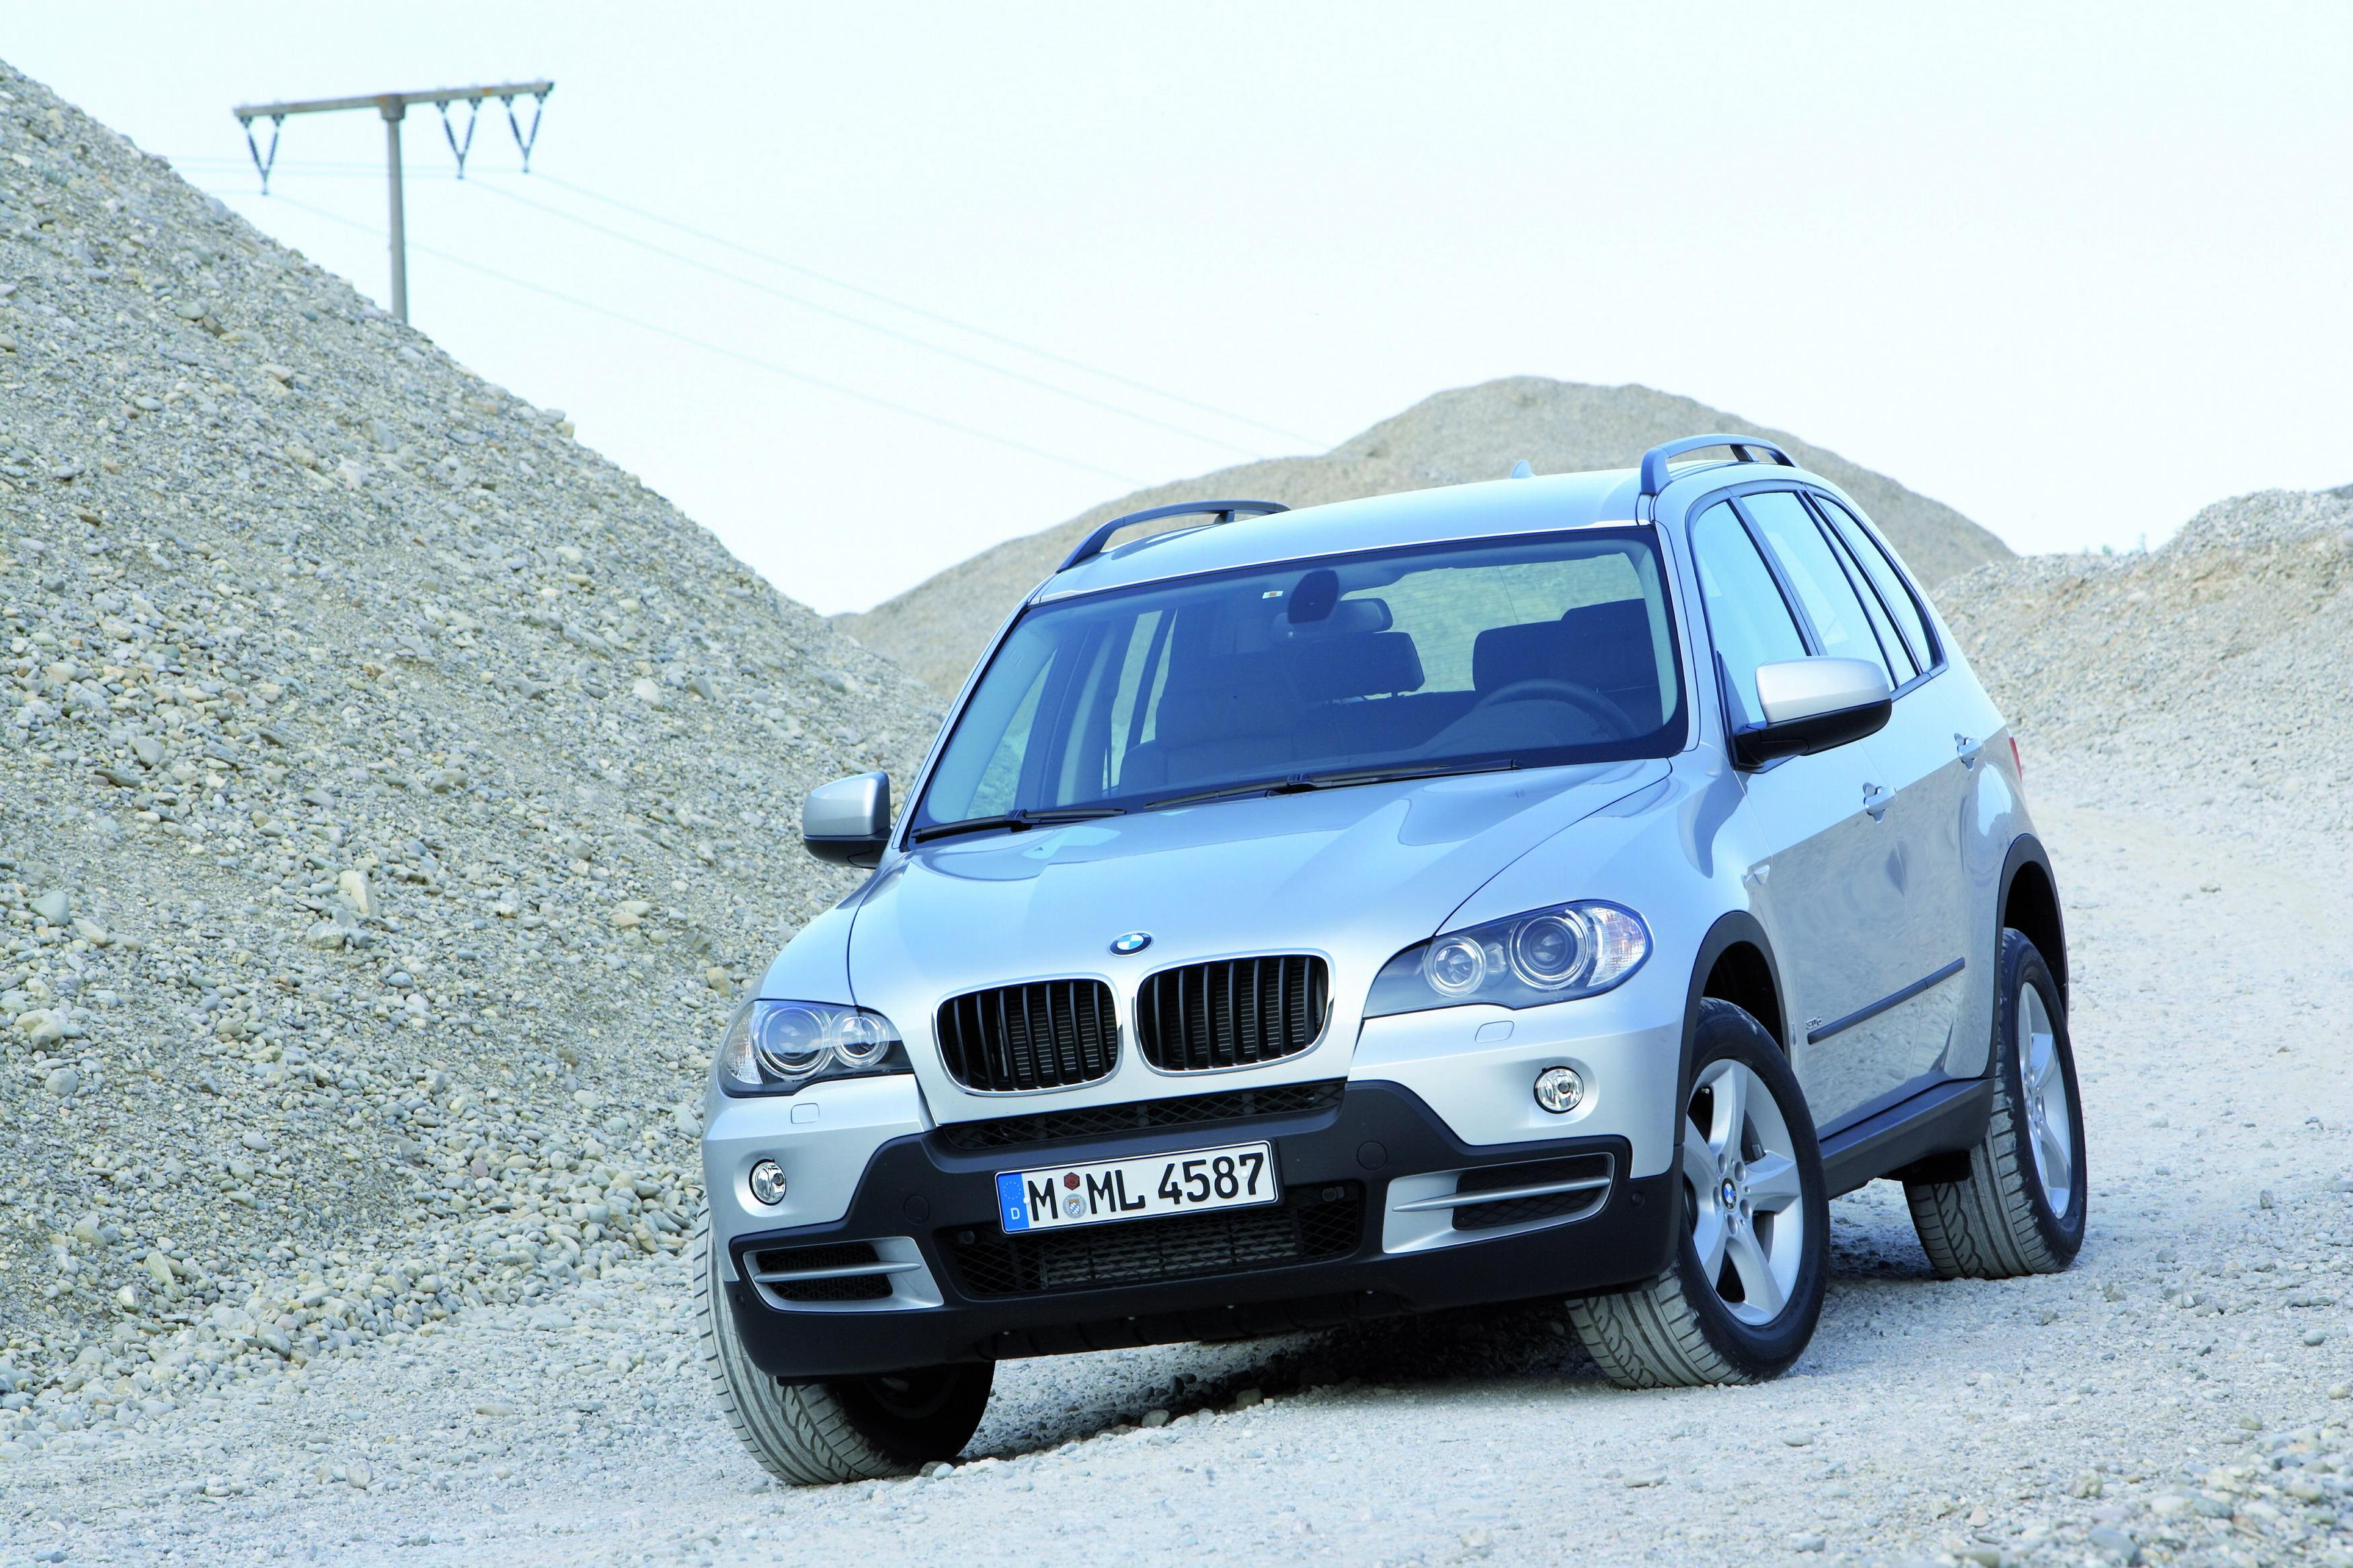 2008-bmw-x5-1 Take A Look About Lincoln 2008